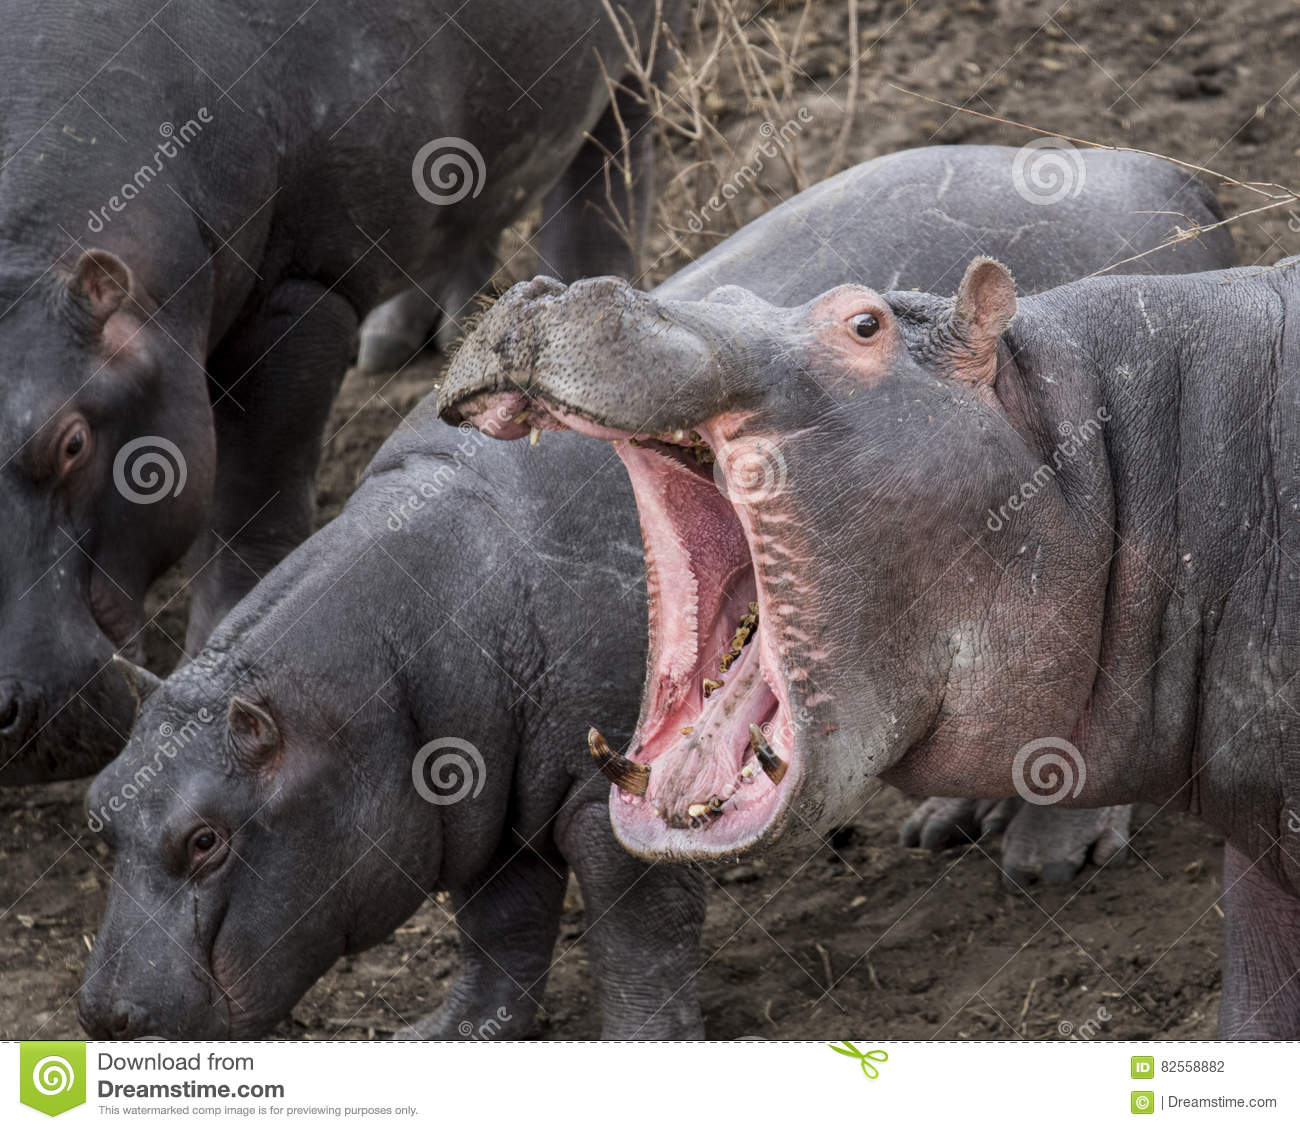 Closeup of large hippo head with mouth wide open showing teeth, standing on land